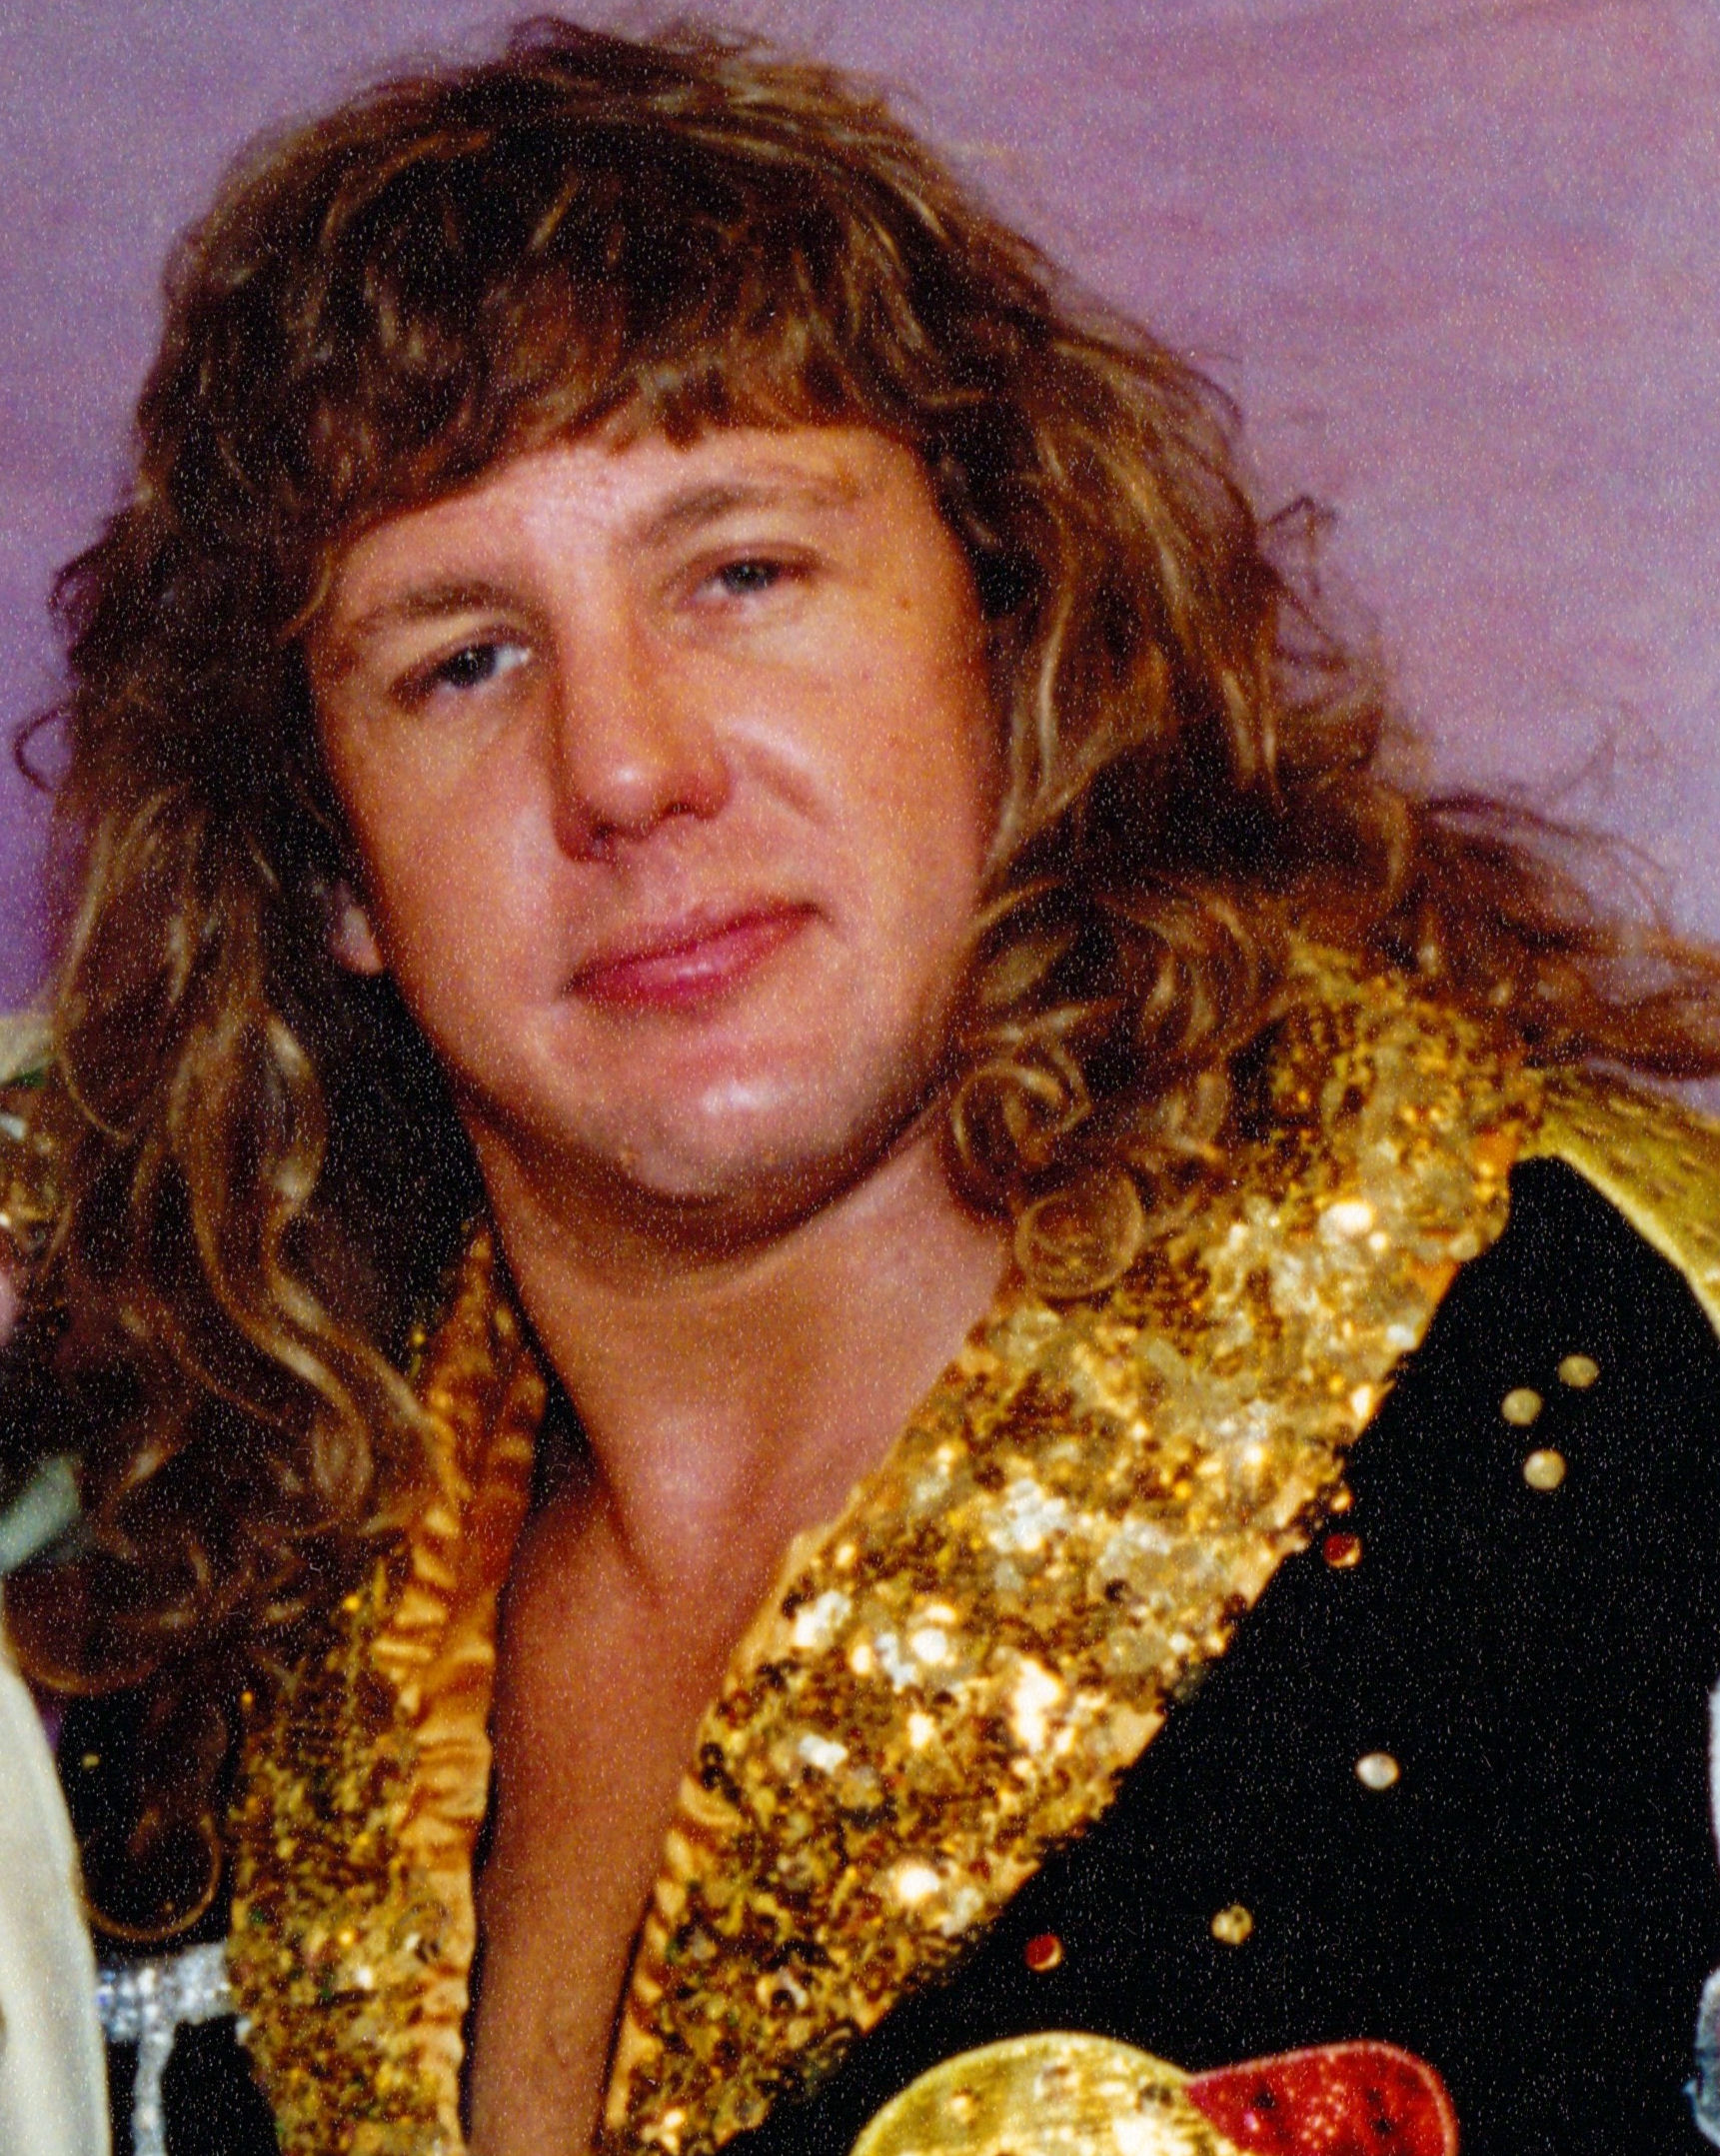 Dr. Tom Prichard!